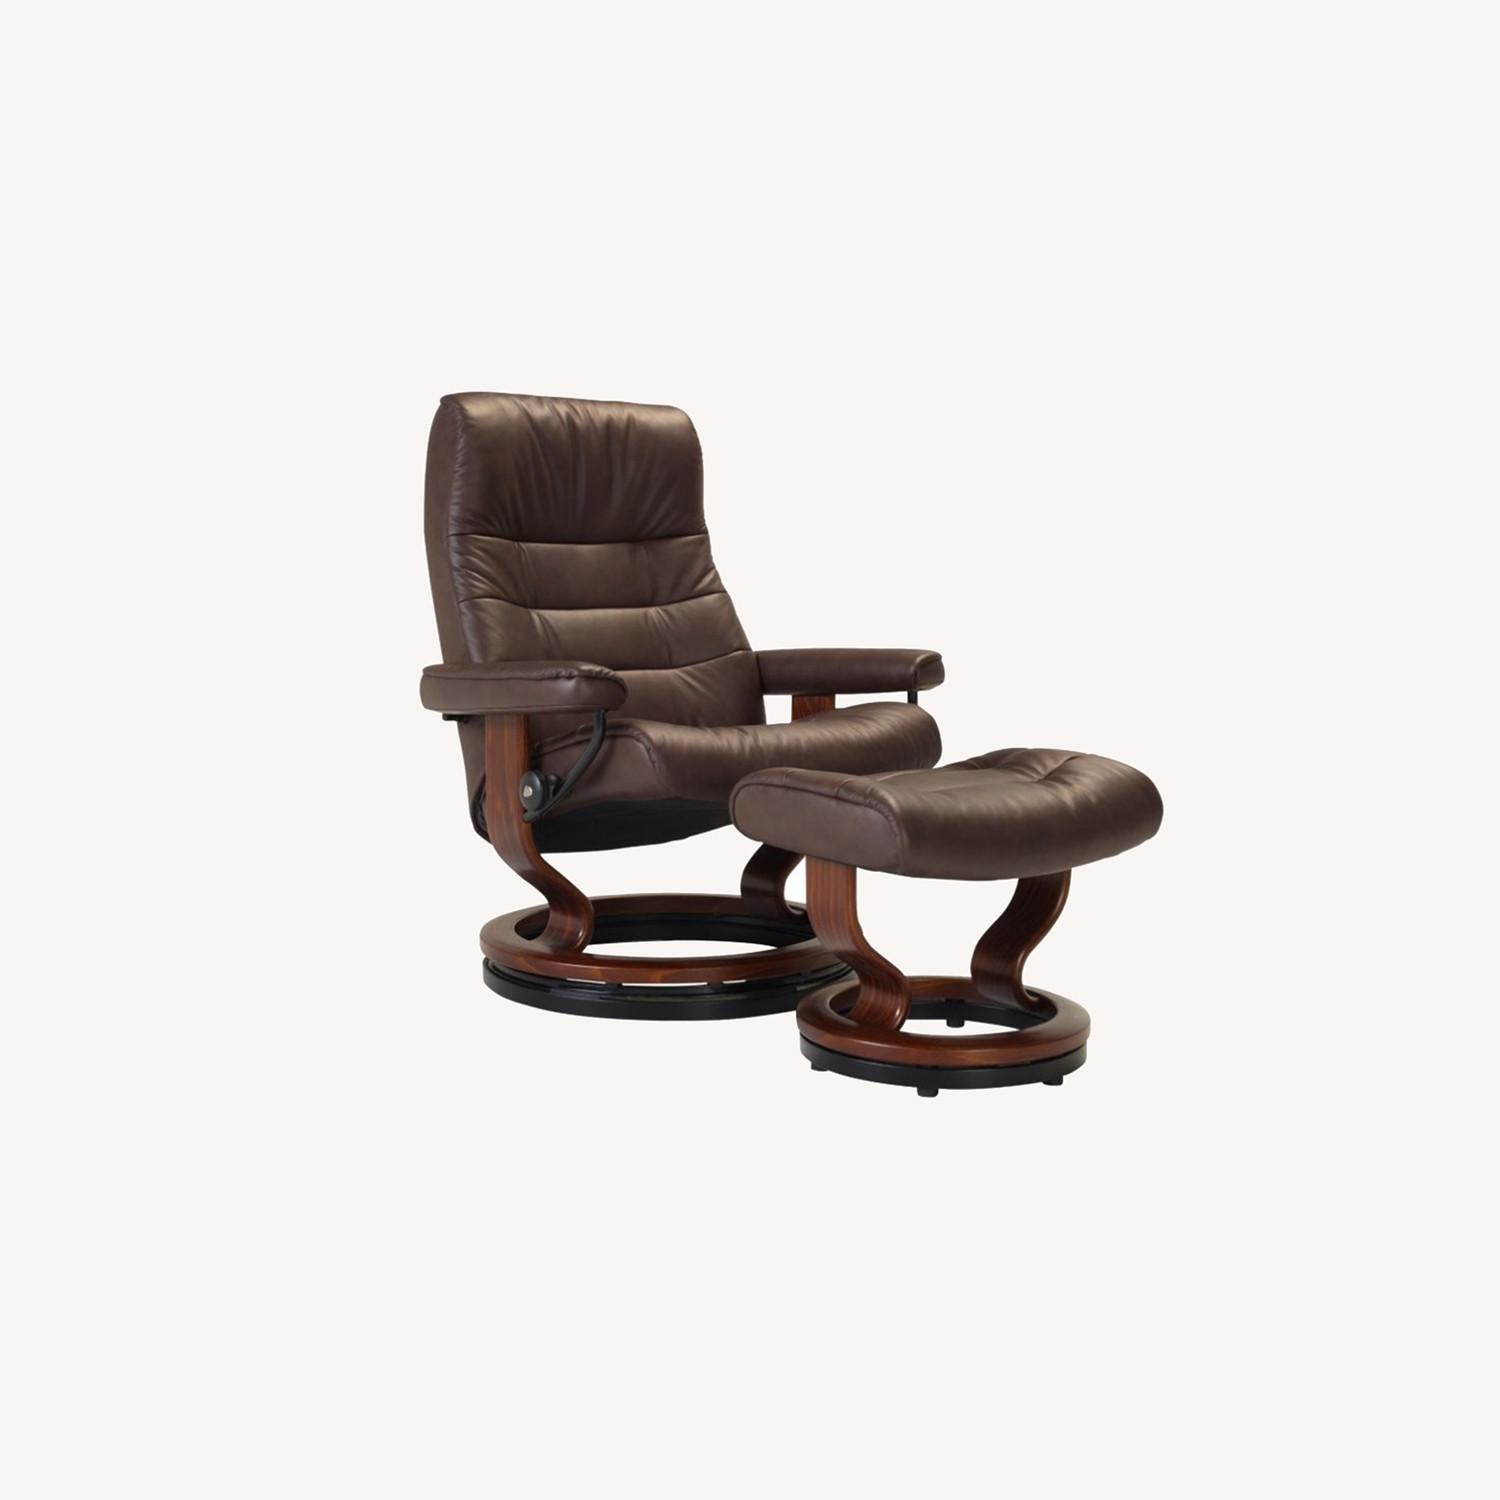 Raymour & Flanigan Leather Reclining Chair and Ottoman - image-0